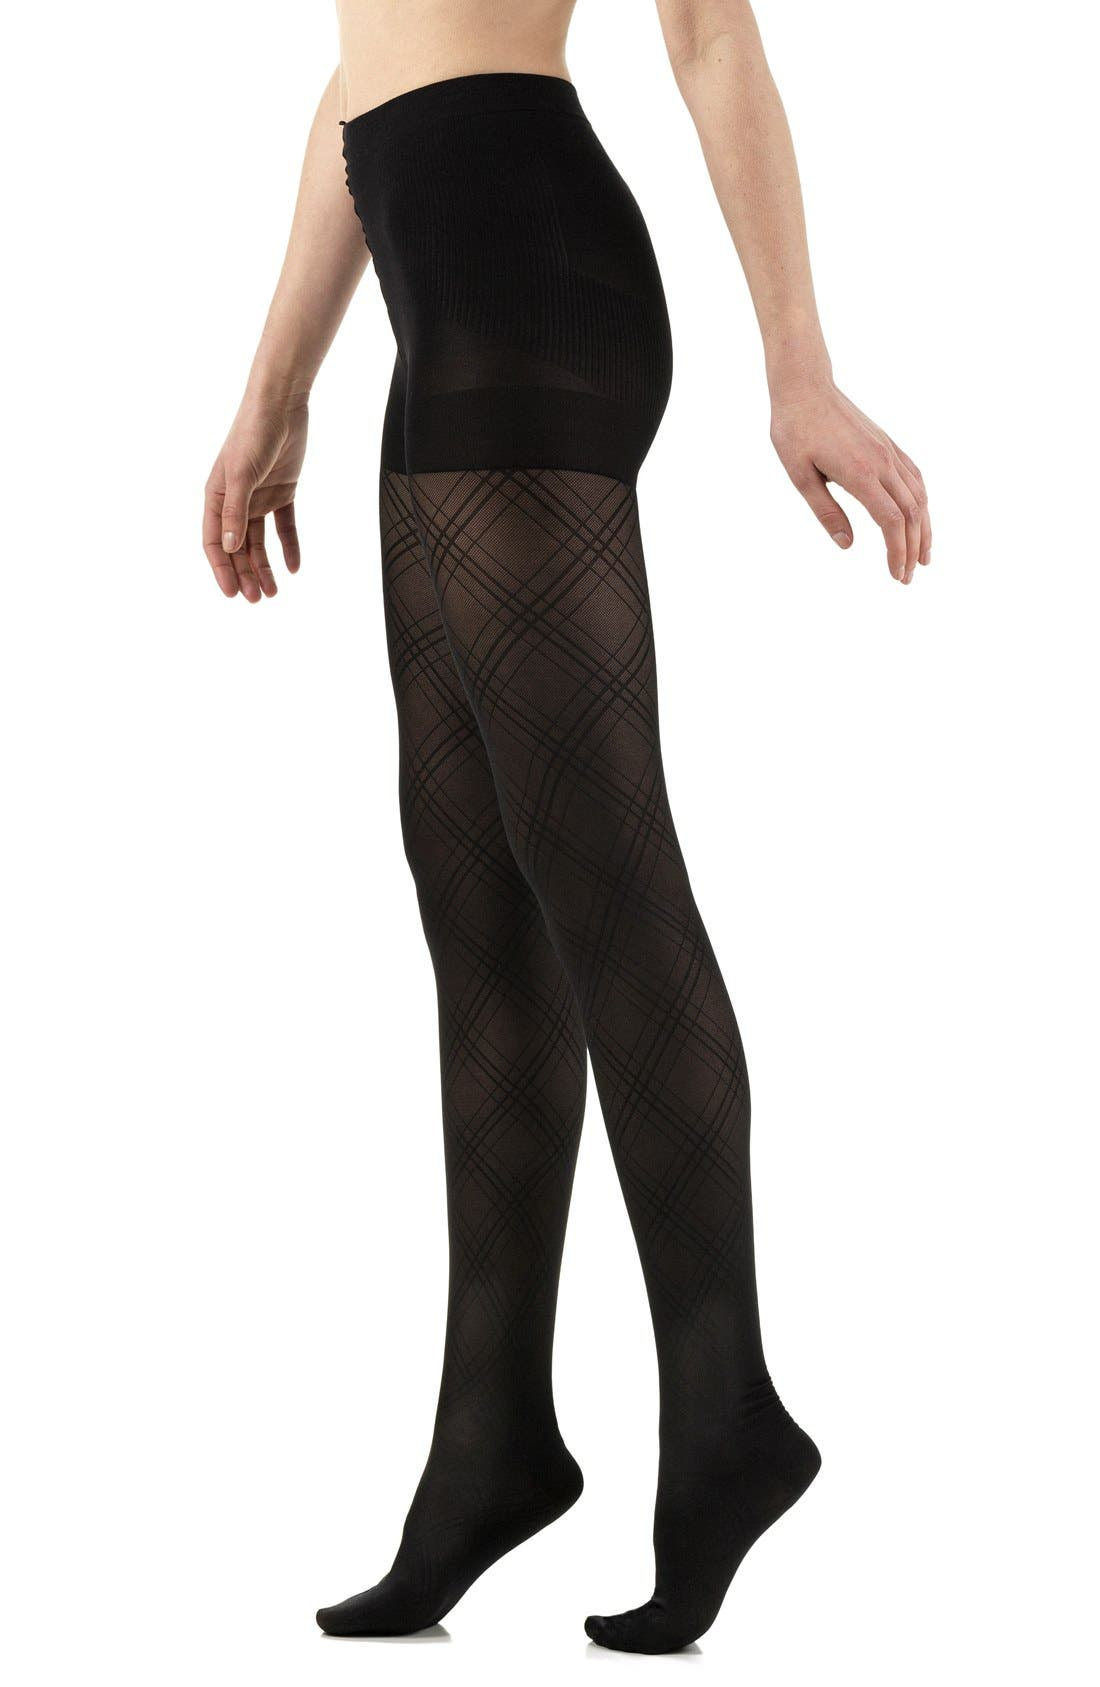 Alternate Image 1 Selected - VIM & VIGR Opaque Argyle Compression Tights